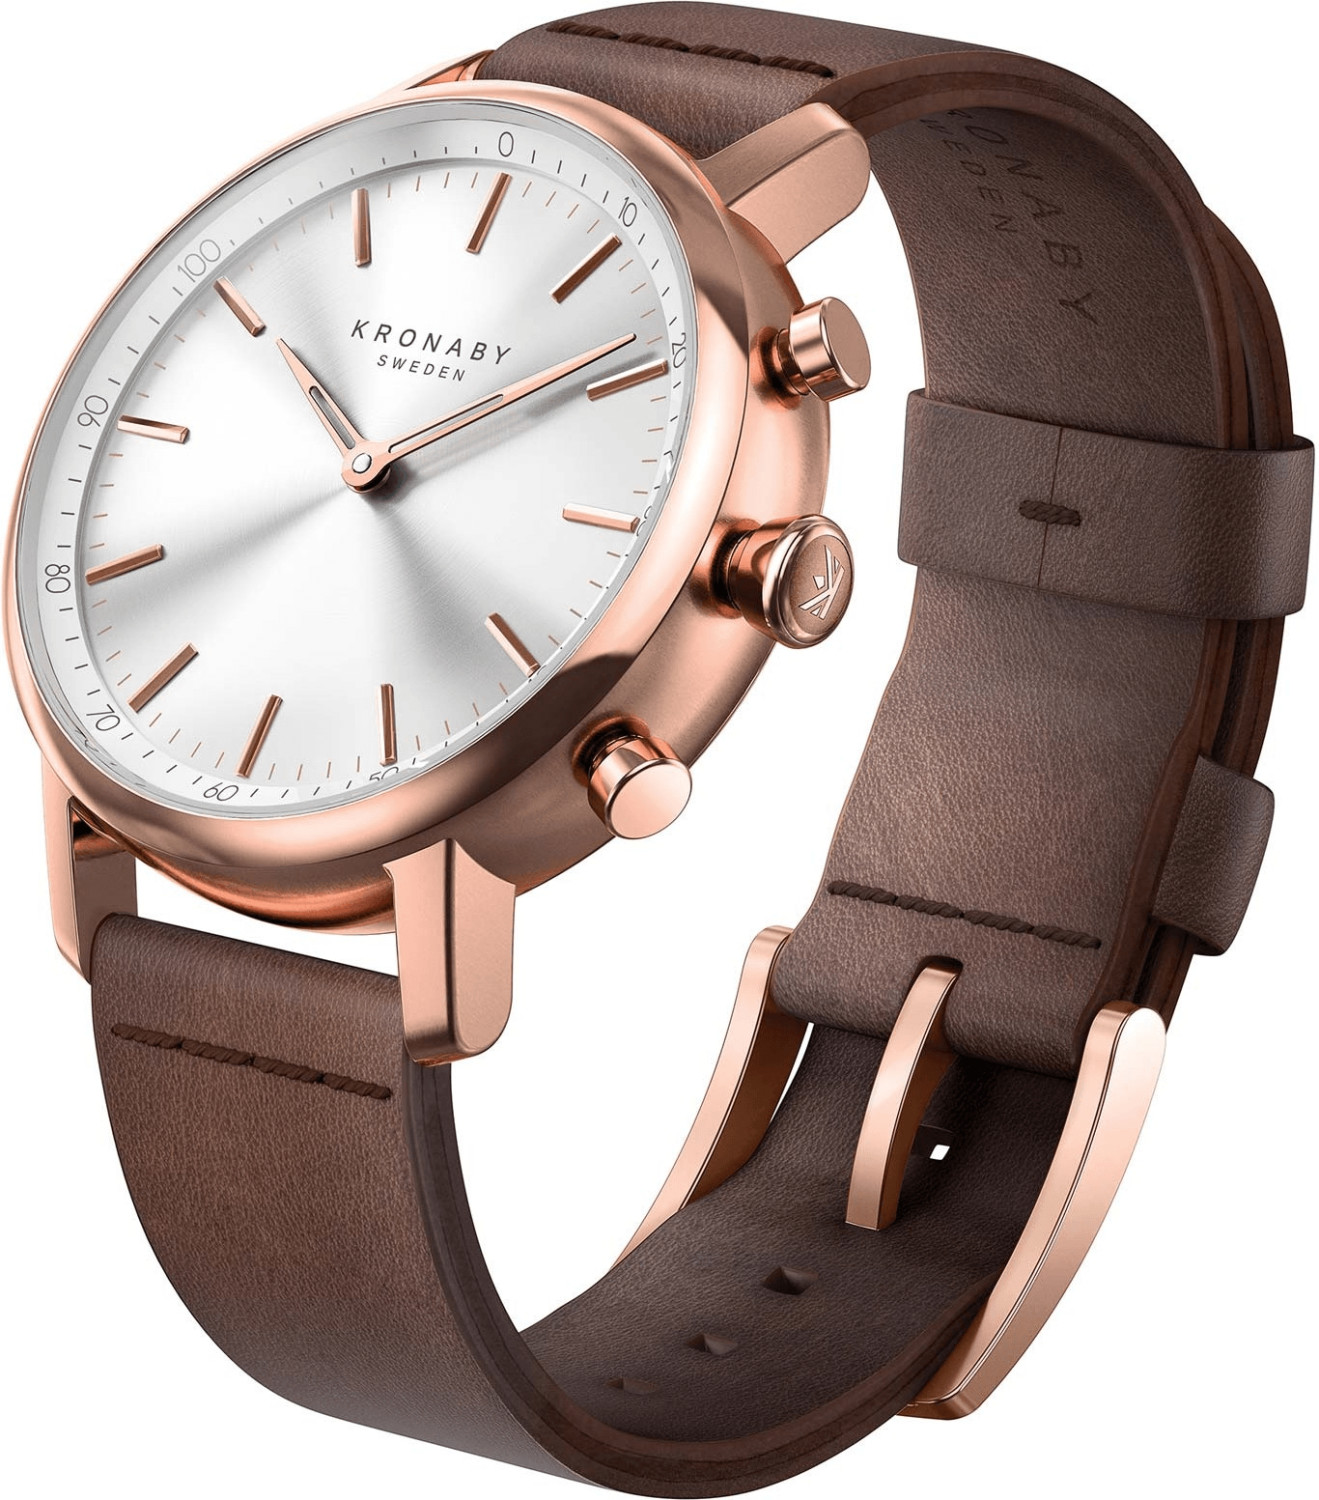 Image of Kronaby Carat silver - dark brown Leather Strap